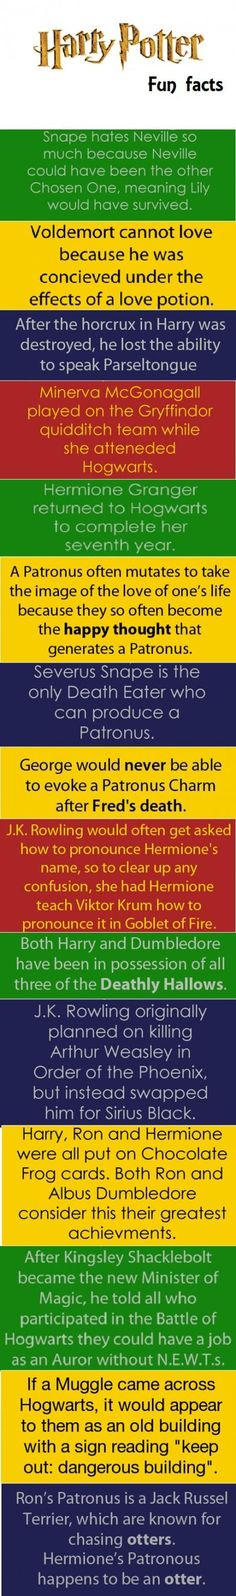 Potterfacts <3